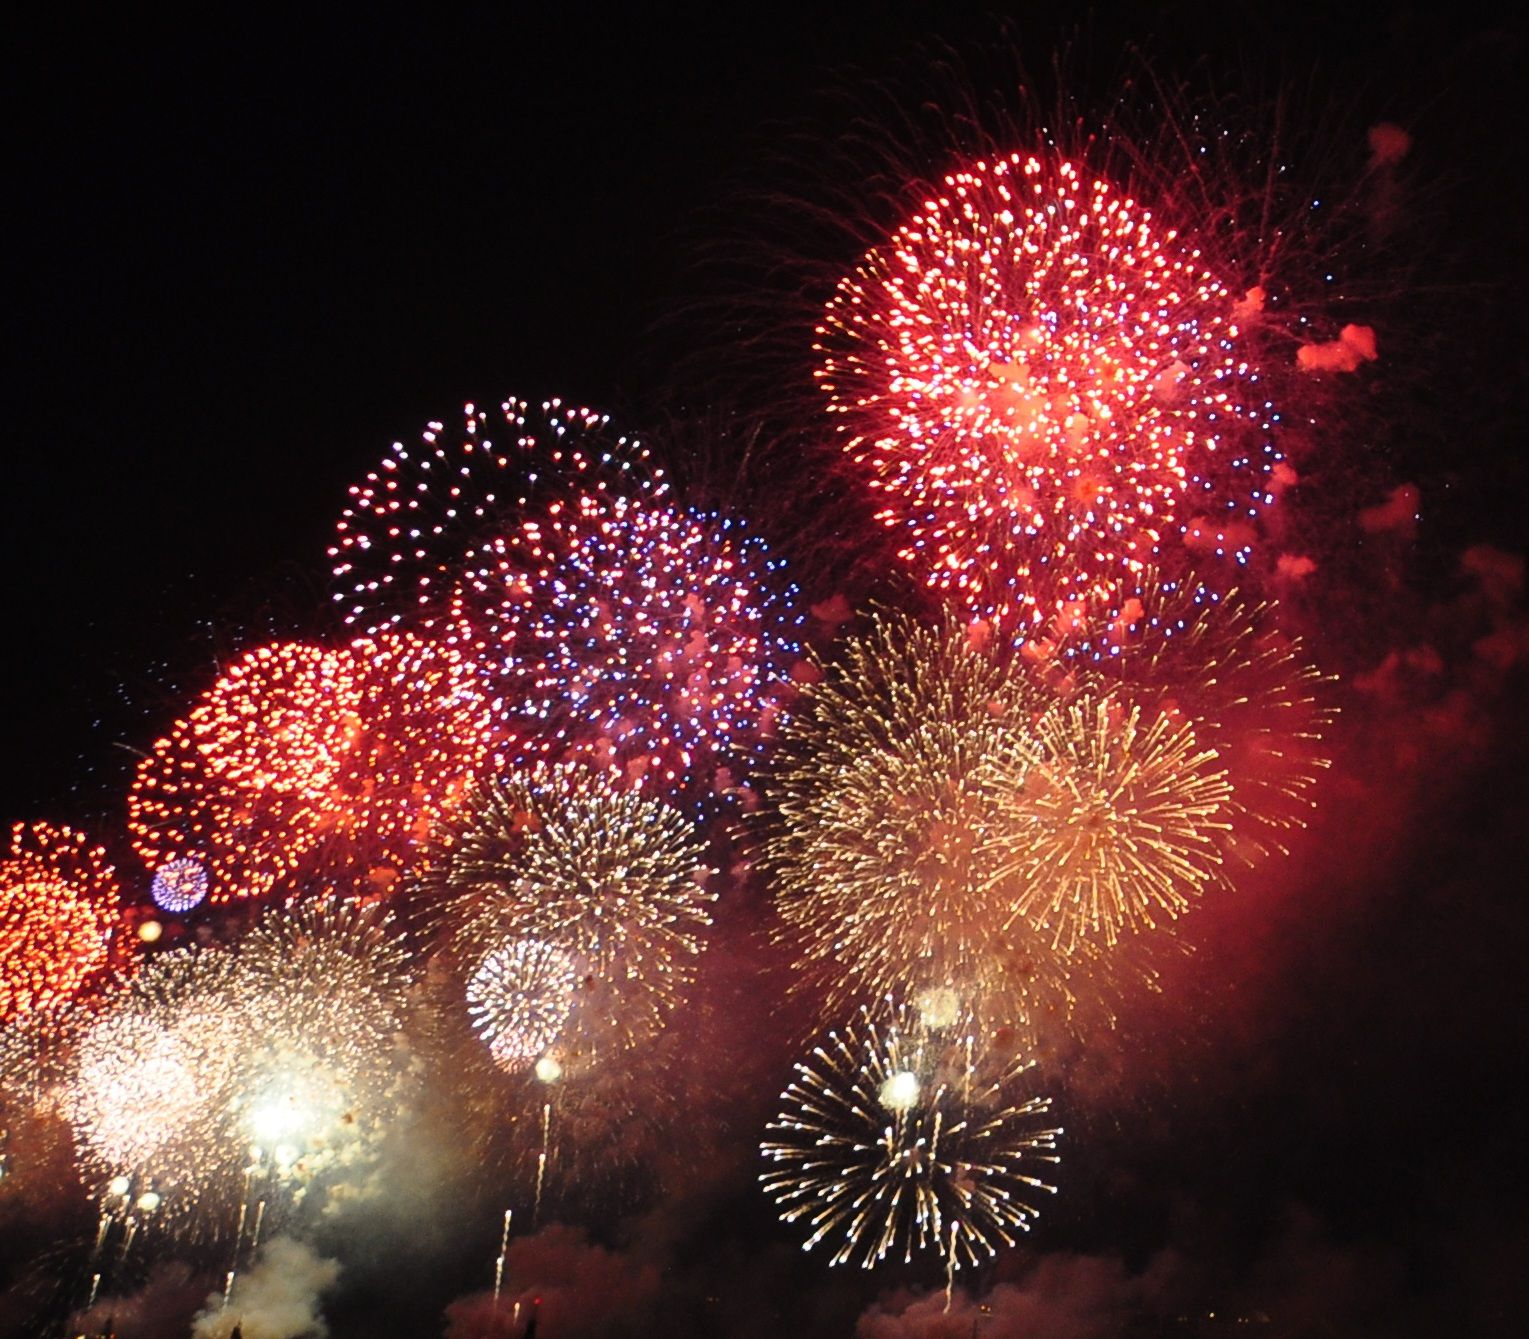 cannon fired fireworks | Hoboken Photos of the Day - Fireworks highlights